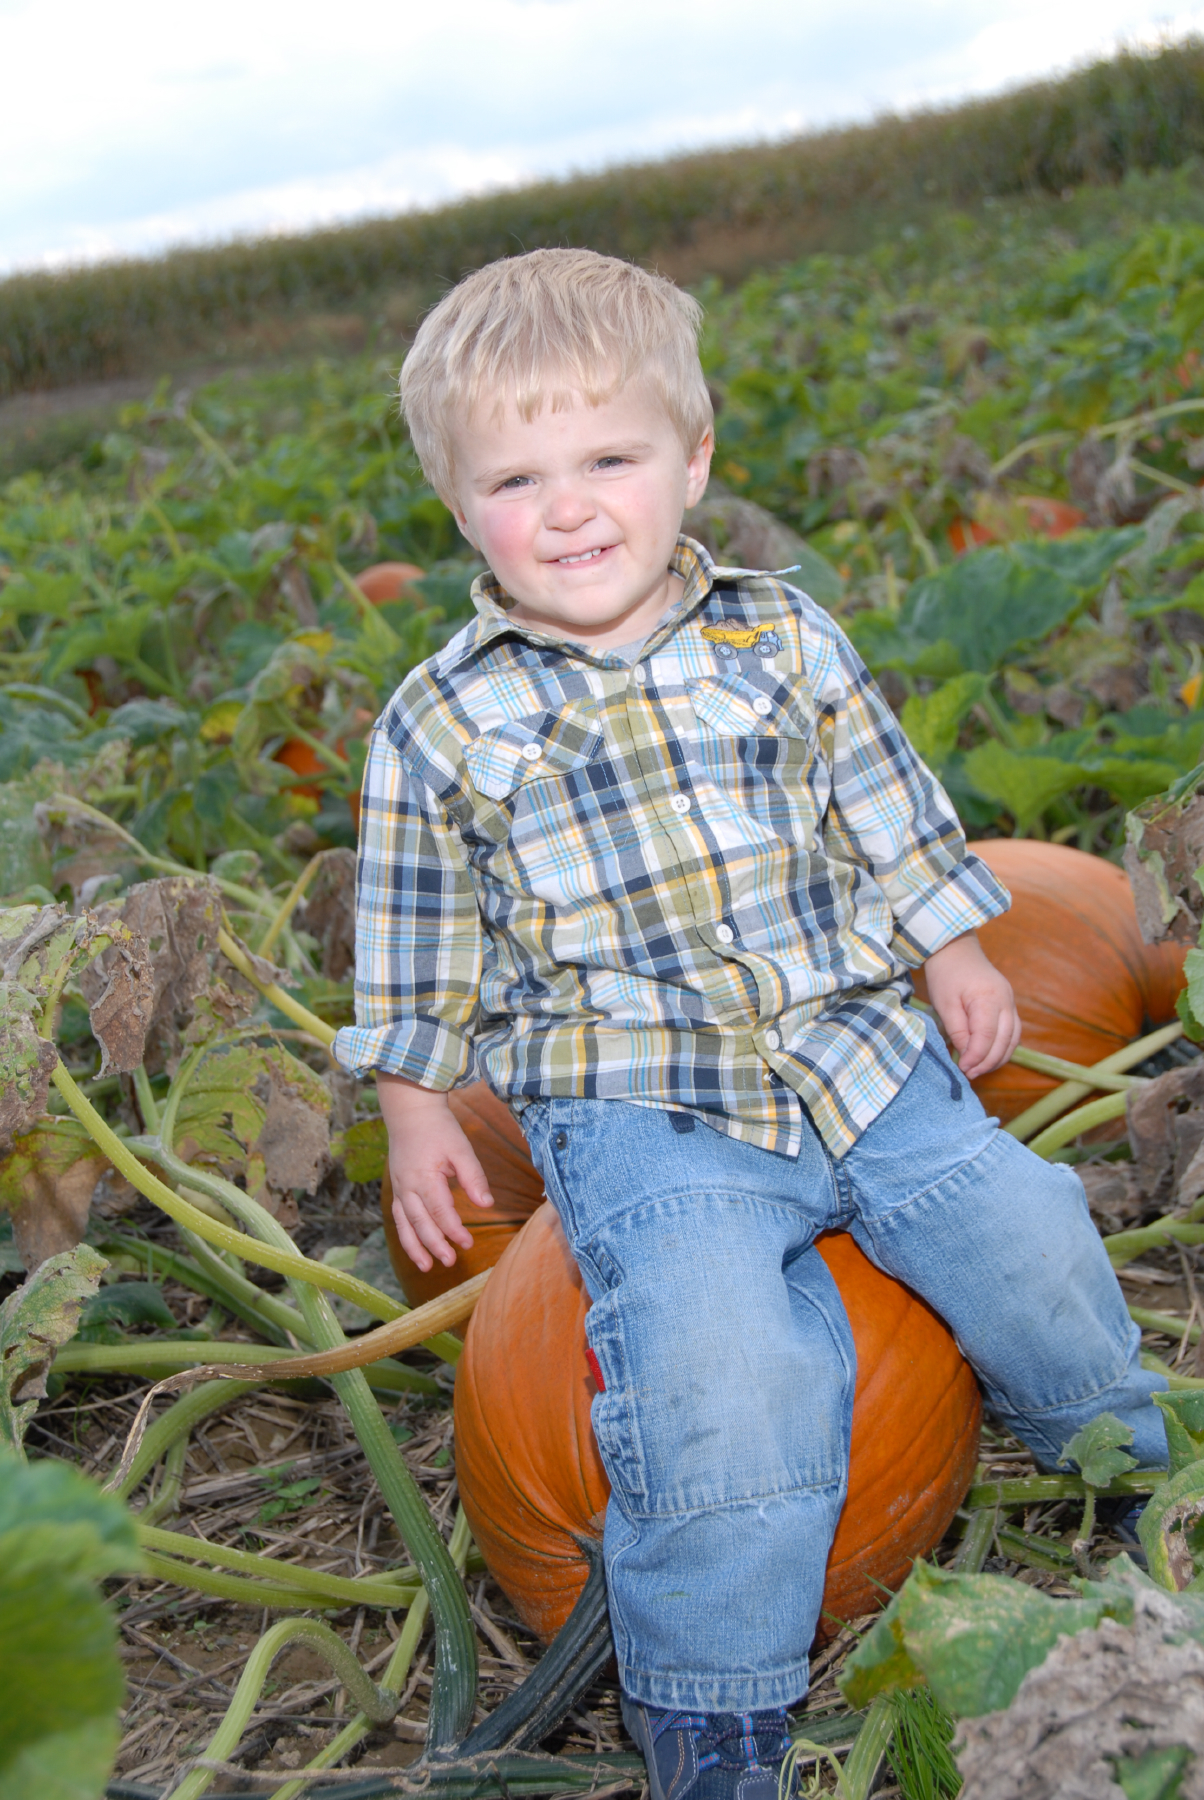 Claiming this pumpkin as his own.JPG